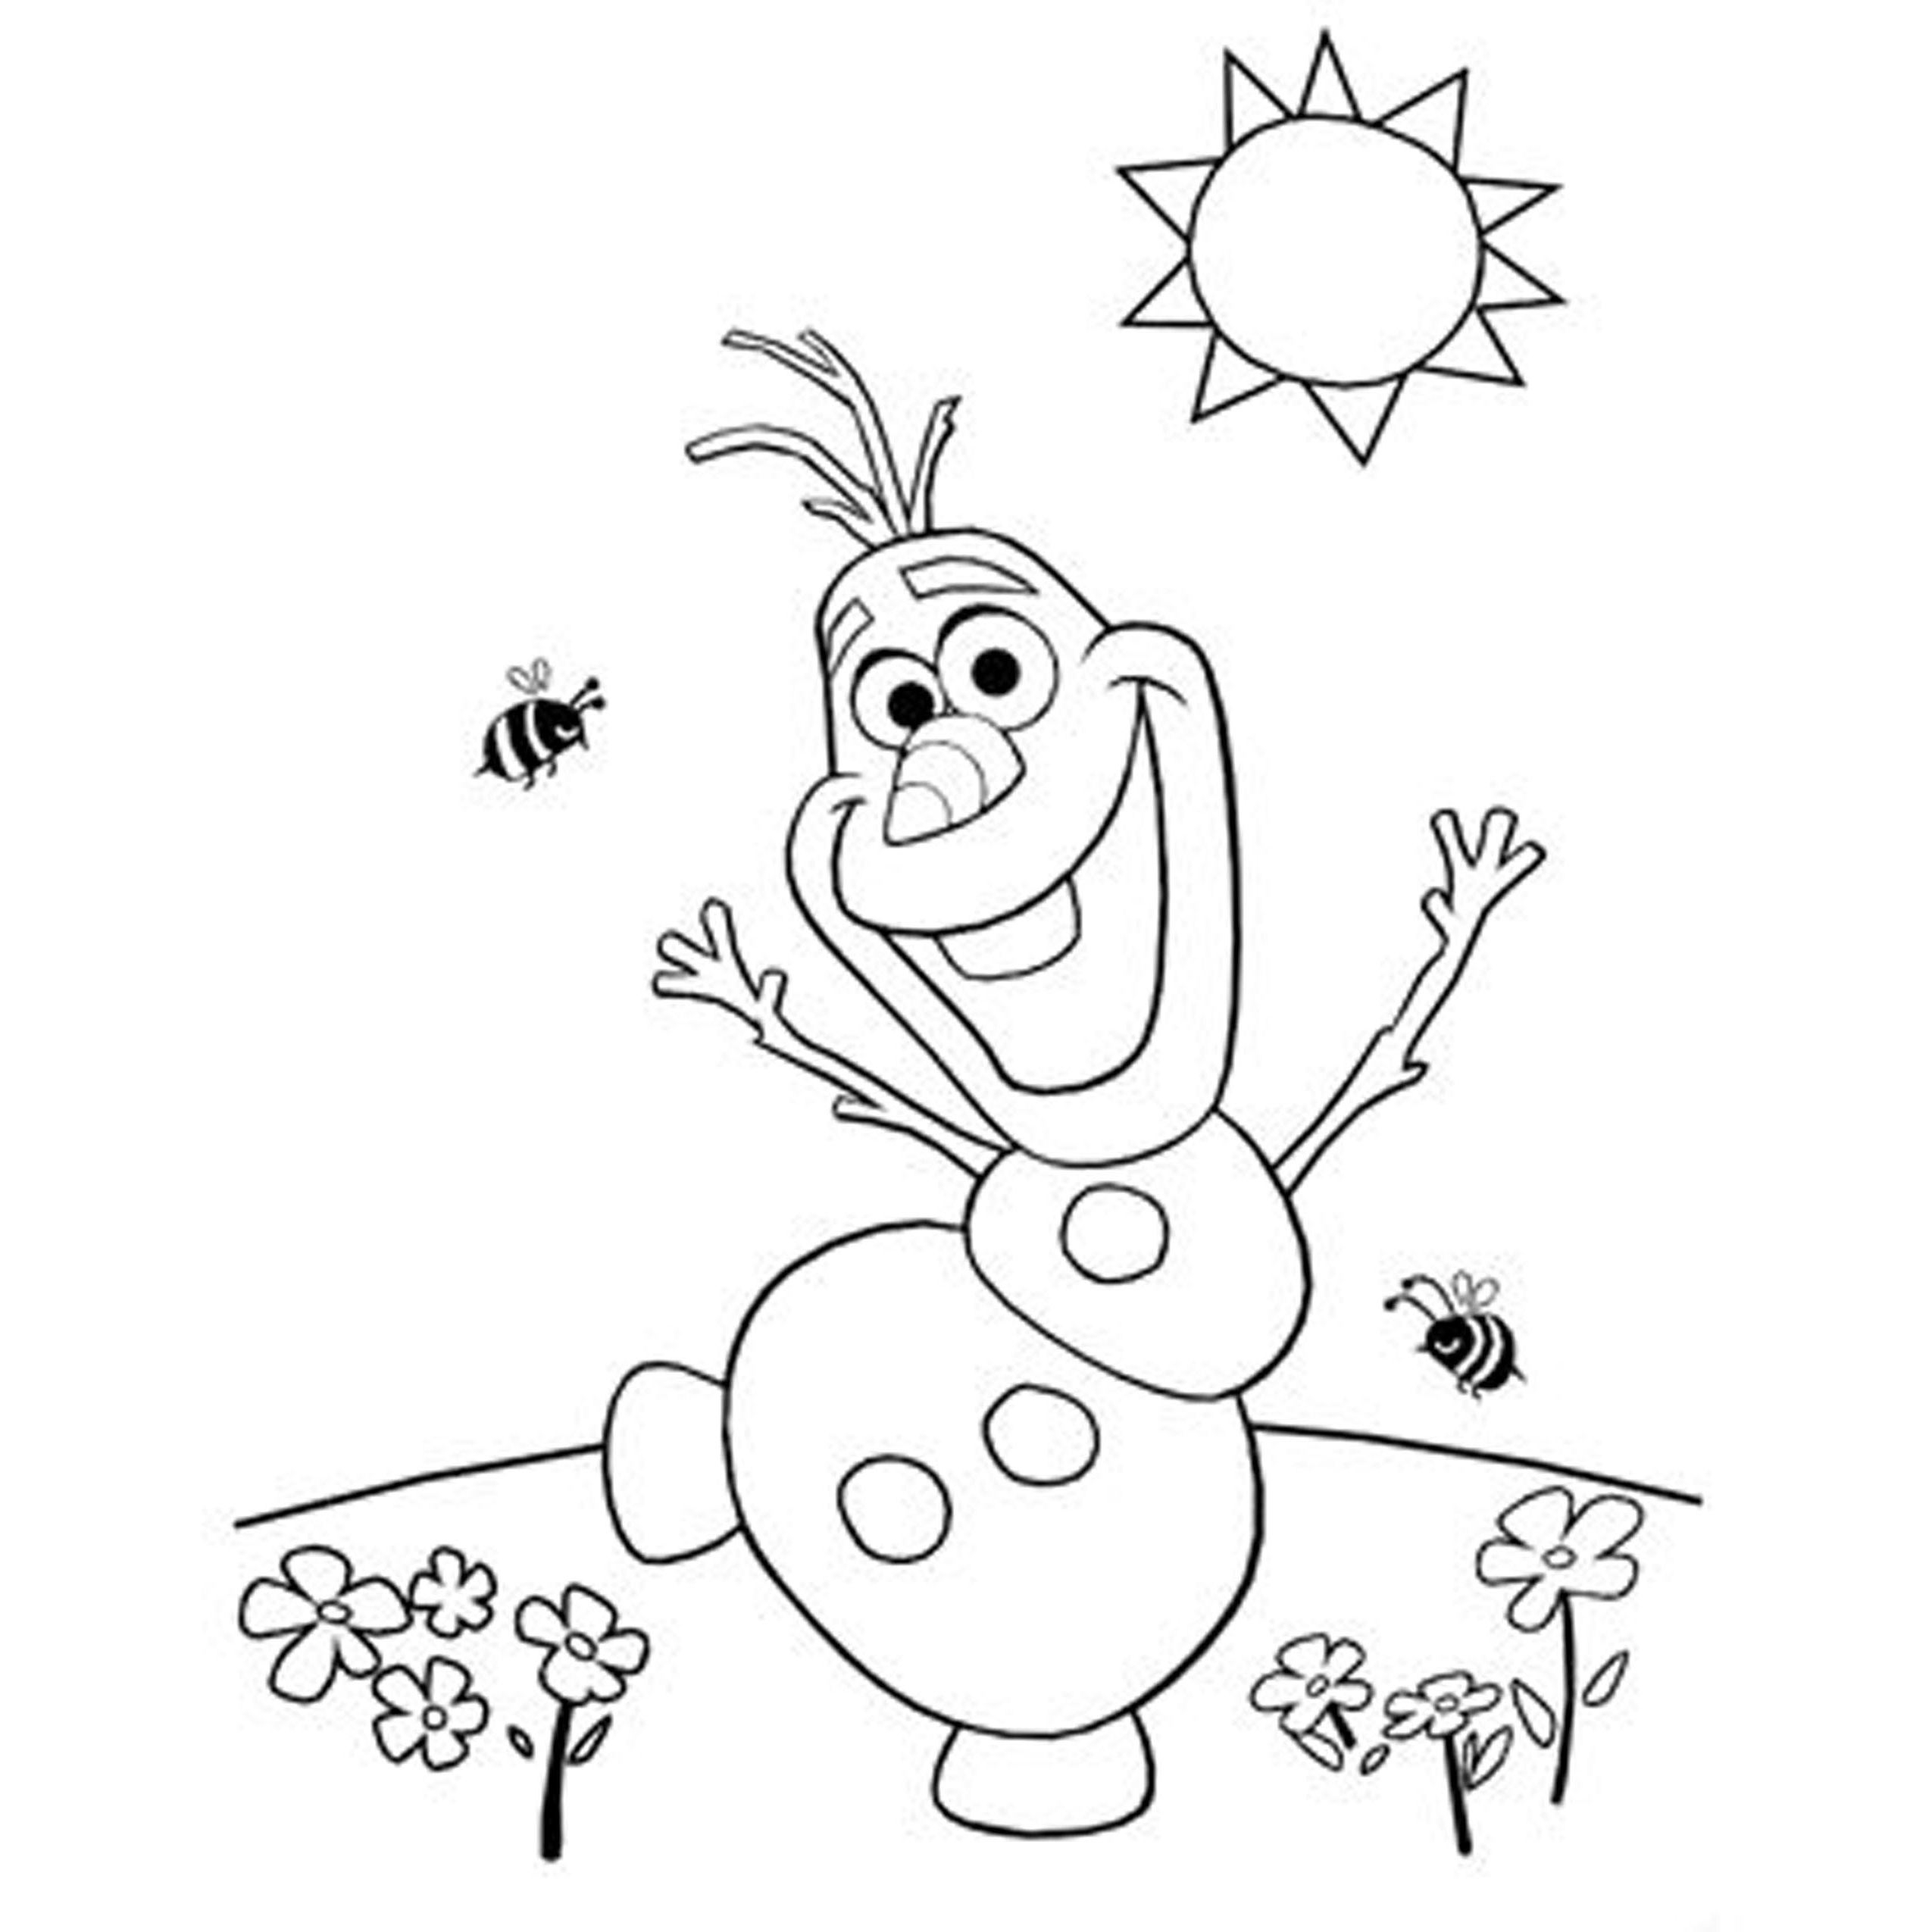 Coloring Pages Frozen Disney Olaf Gallery – Free Coloring Sheets